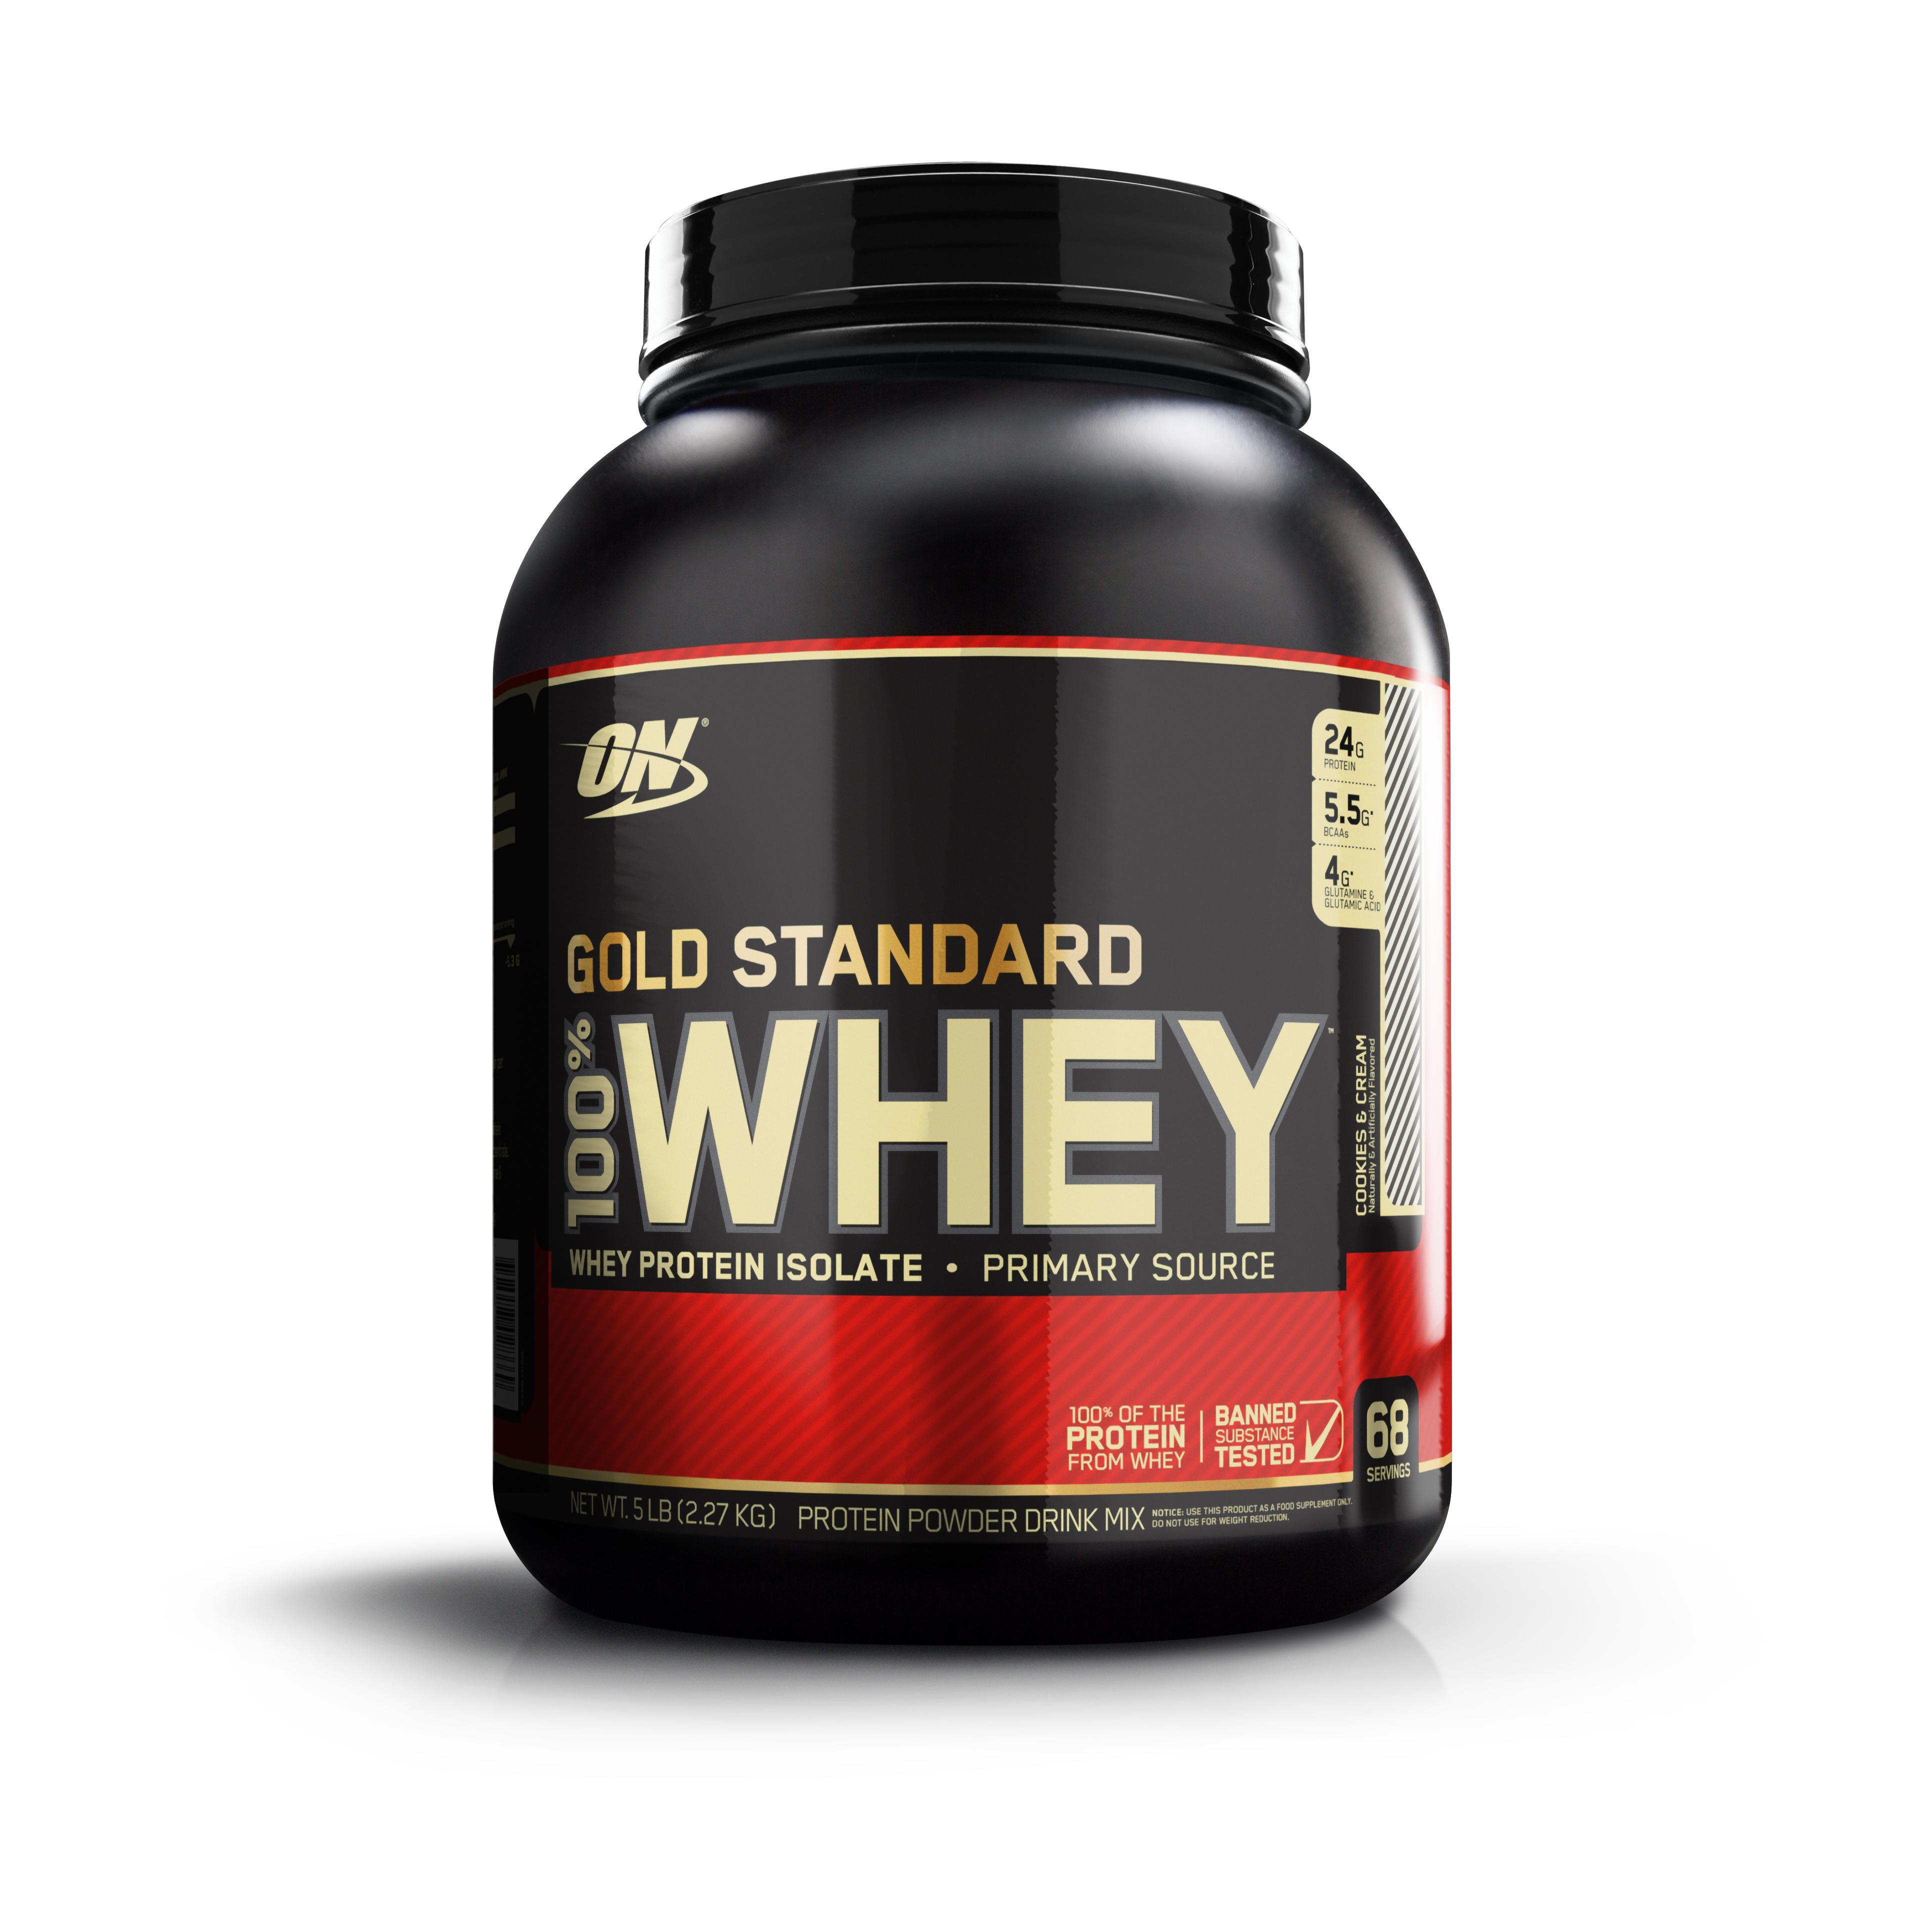 Optimum Nutrition Gold Standard 100% Whey Protein Powder, Cookies & Cream, 24g Protein, 5 Lb